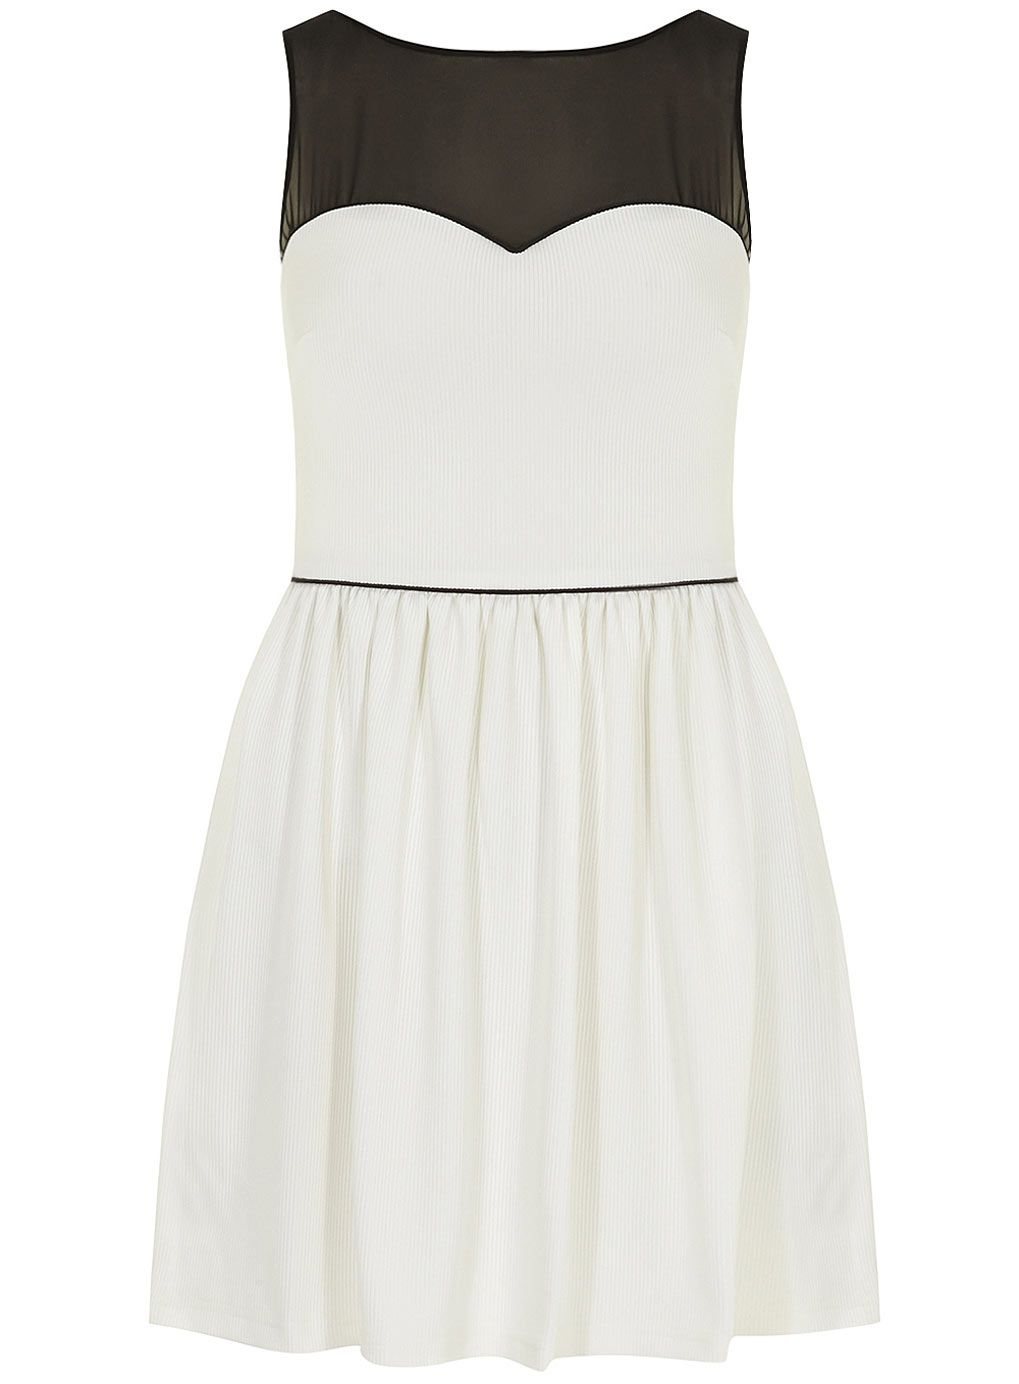 Love this dress from the kardashian kollection from dorothy perkins